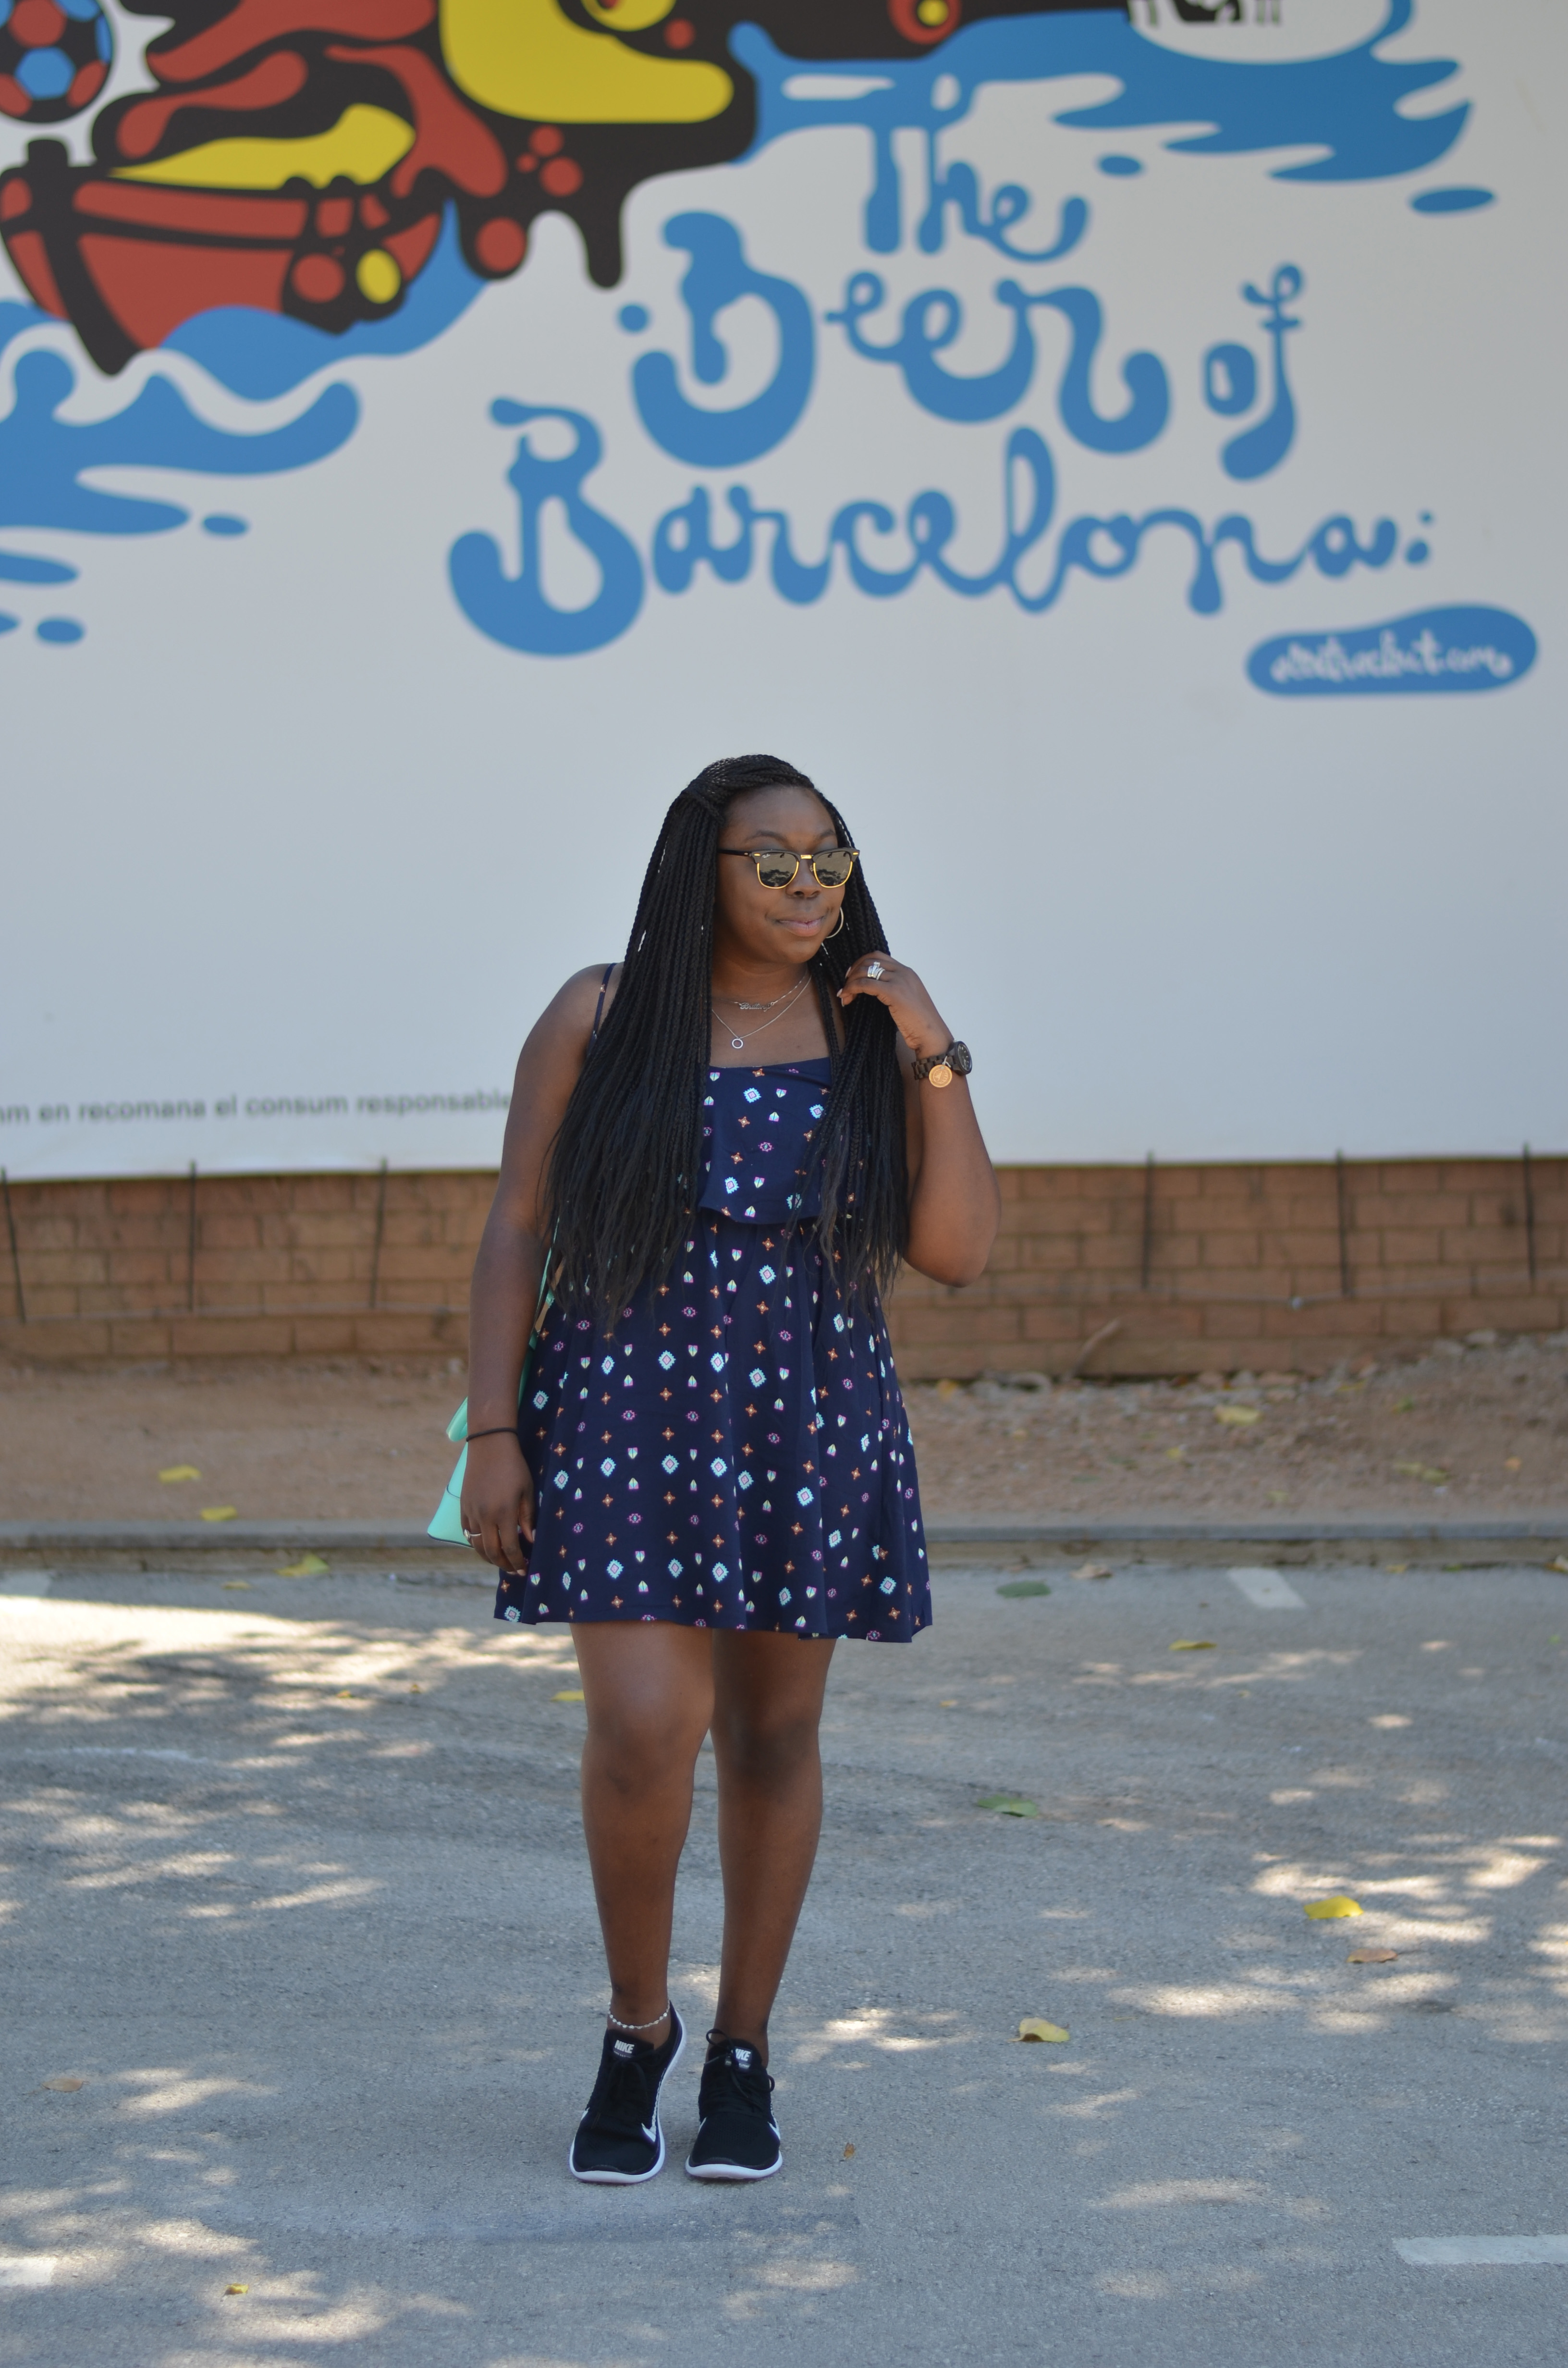 Barcelona Style Dress and Sneakers